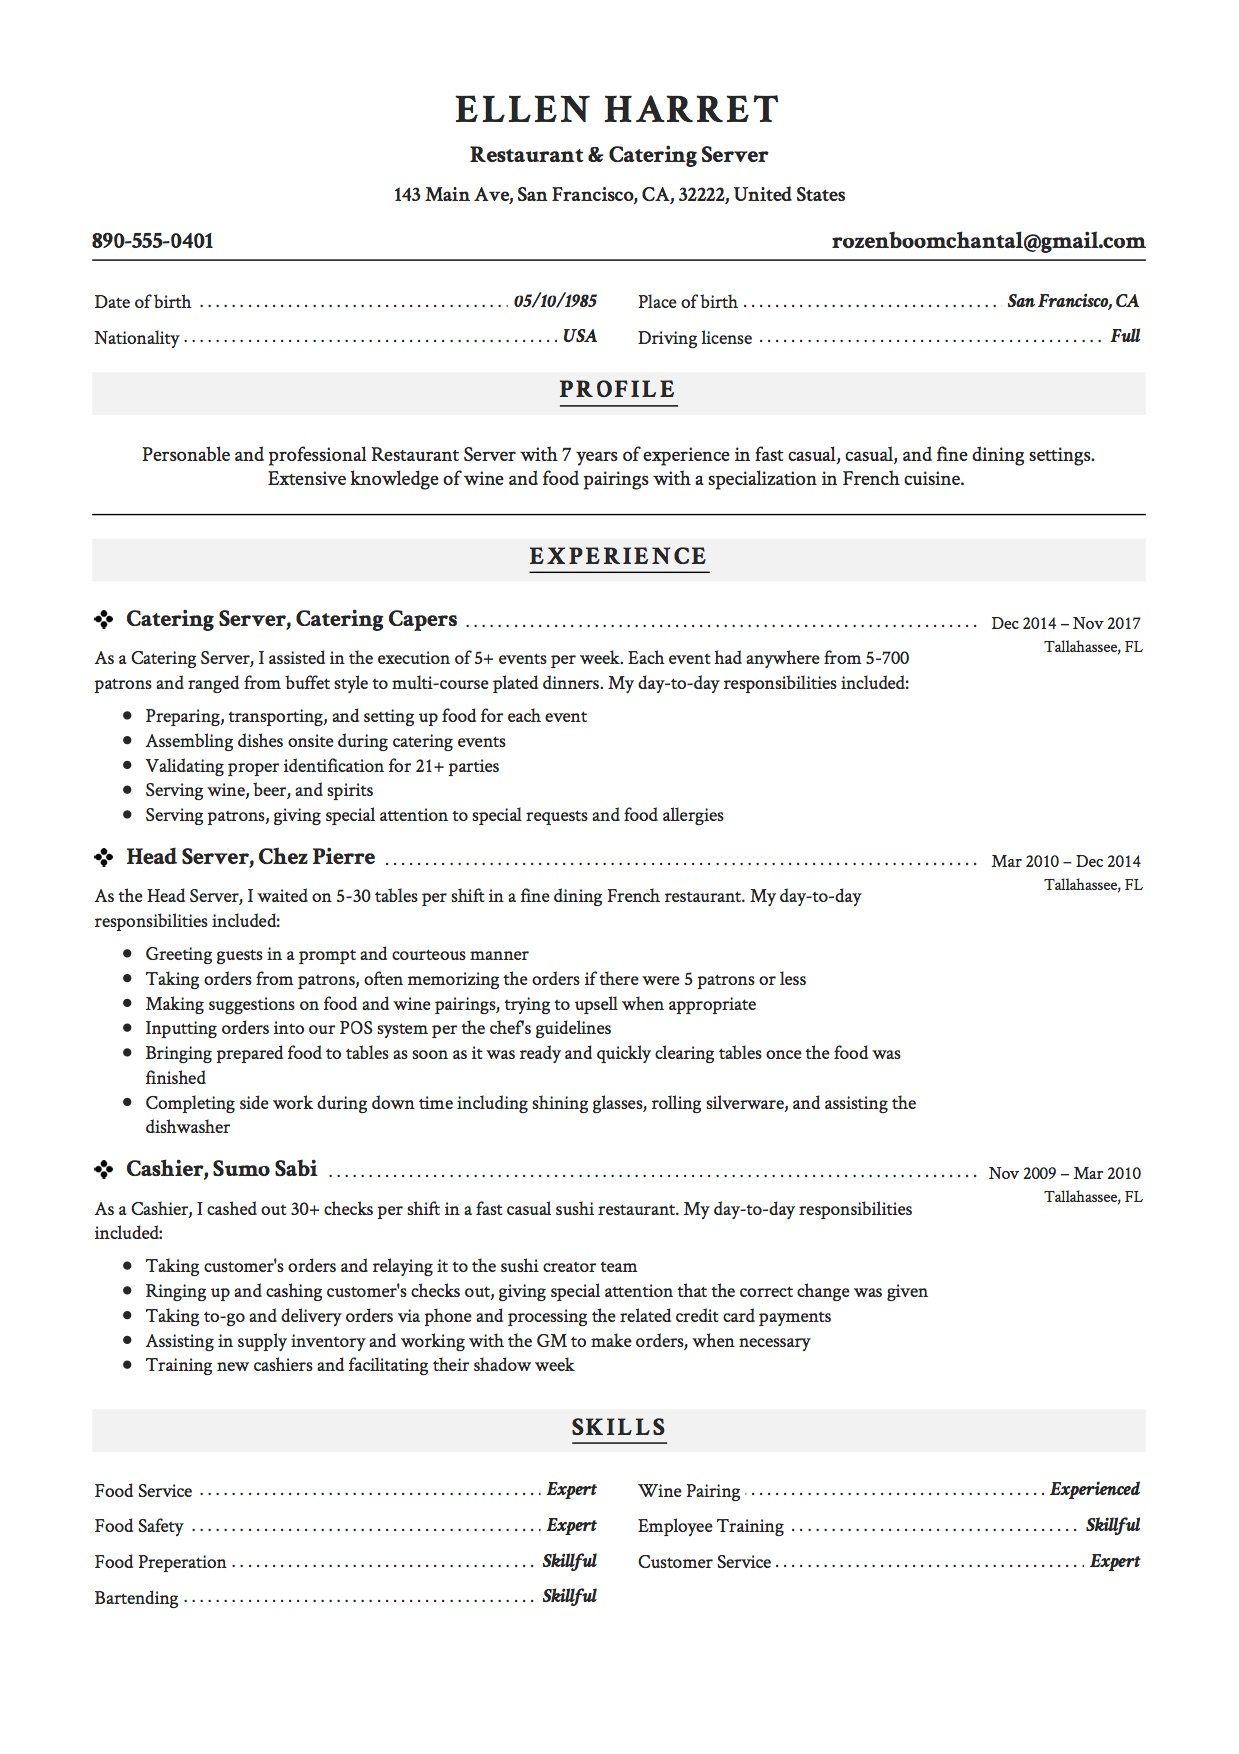 Resume examples for restaurant server